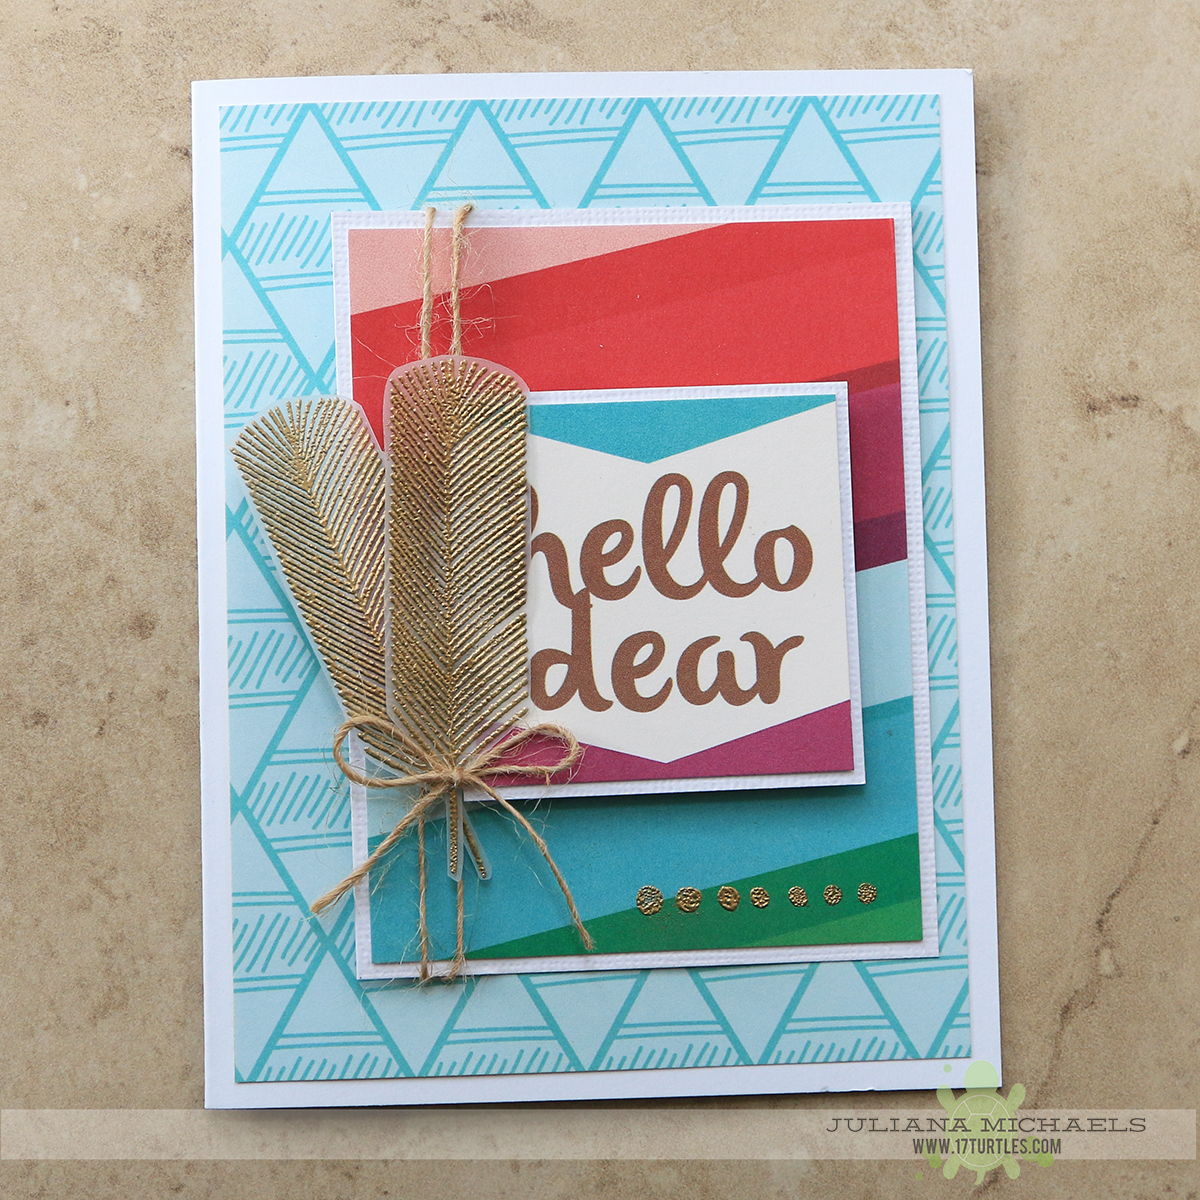 Hello Dear Card by Juliana Michaels for Elle's Studio featuring Sycamore Lane and October Exclusive Kit